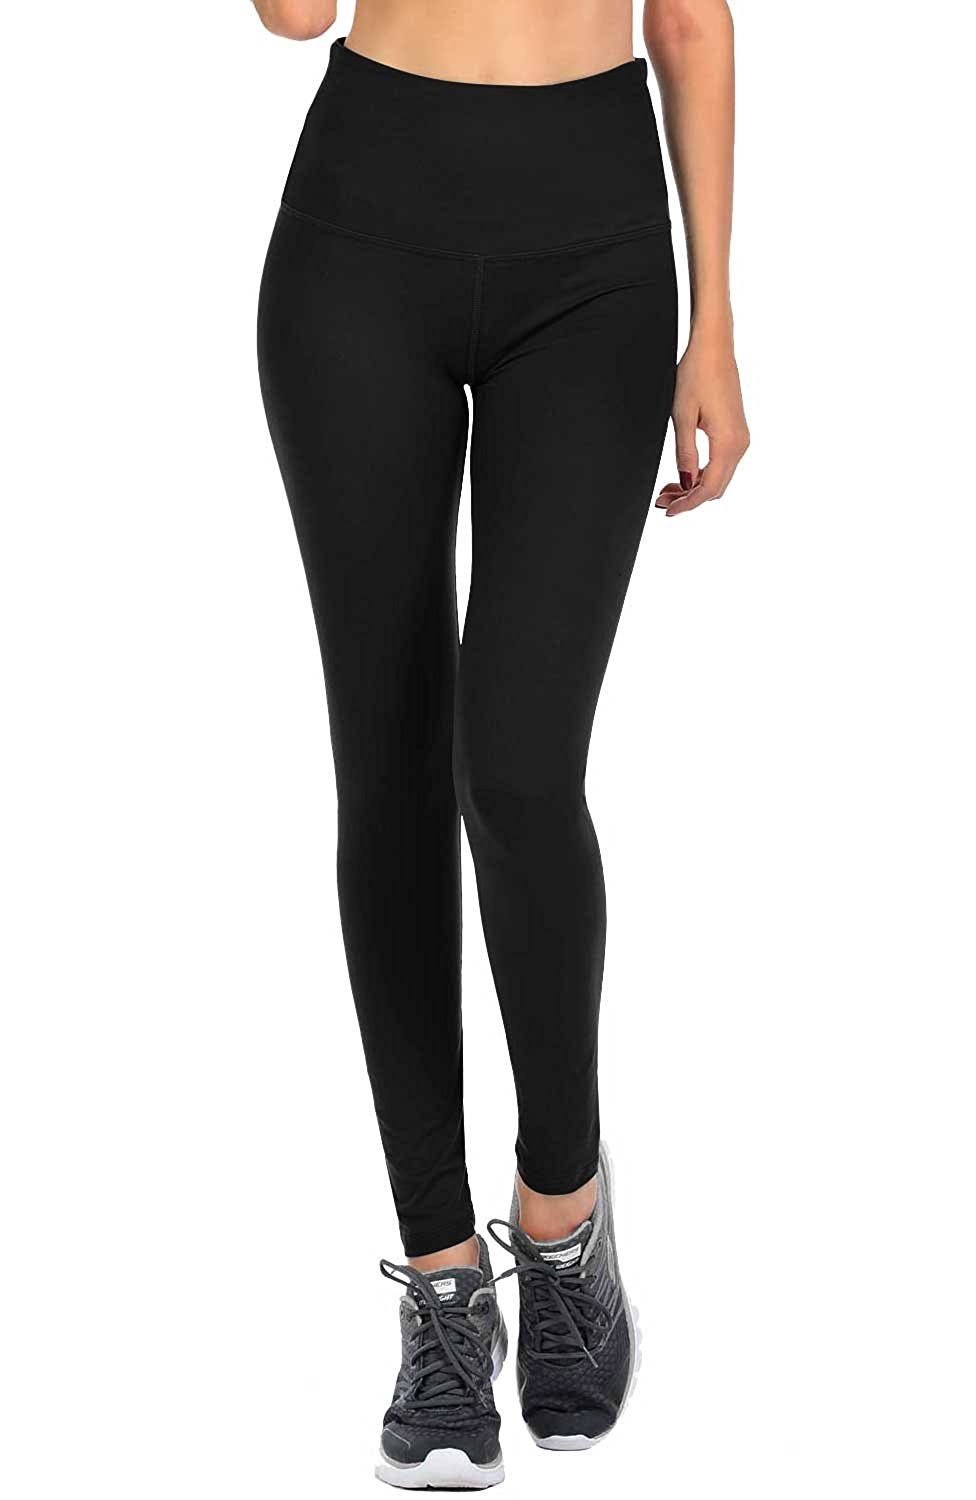 5aed35c5d2 Best Black Leggings - Reviews On Top Brands & Styles